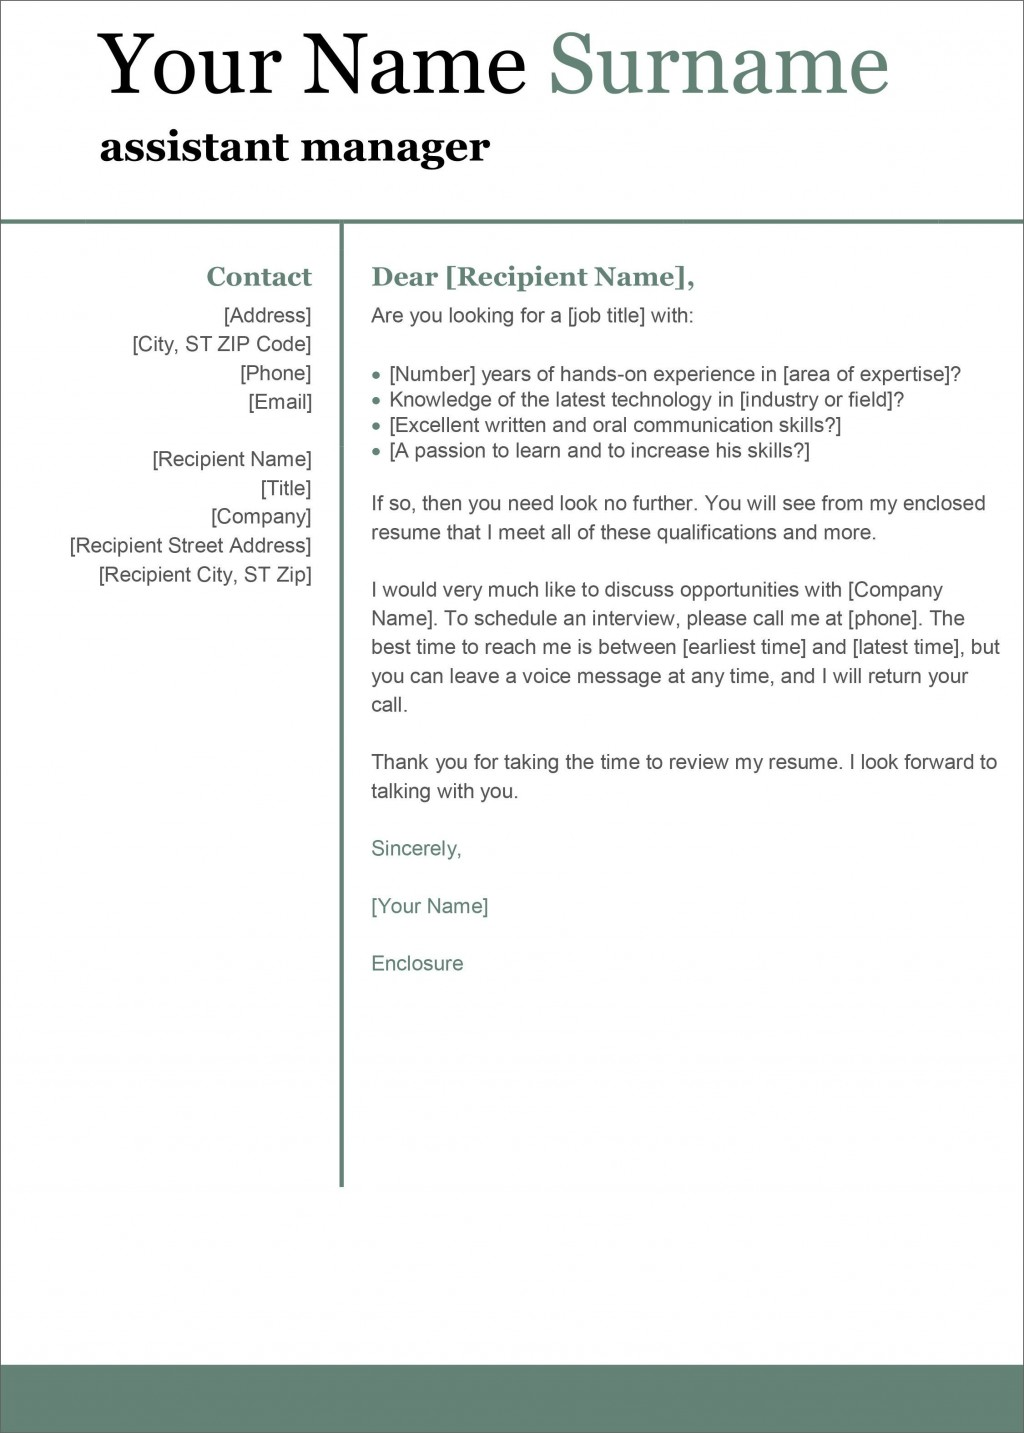 005 Simple Cover Letter Template Word Image Large